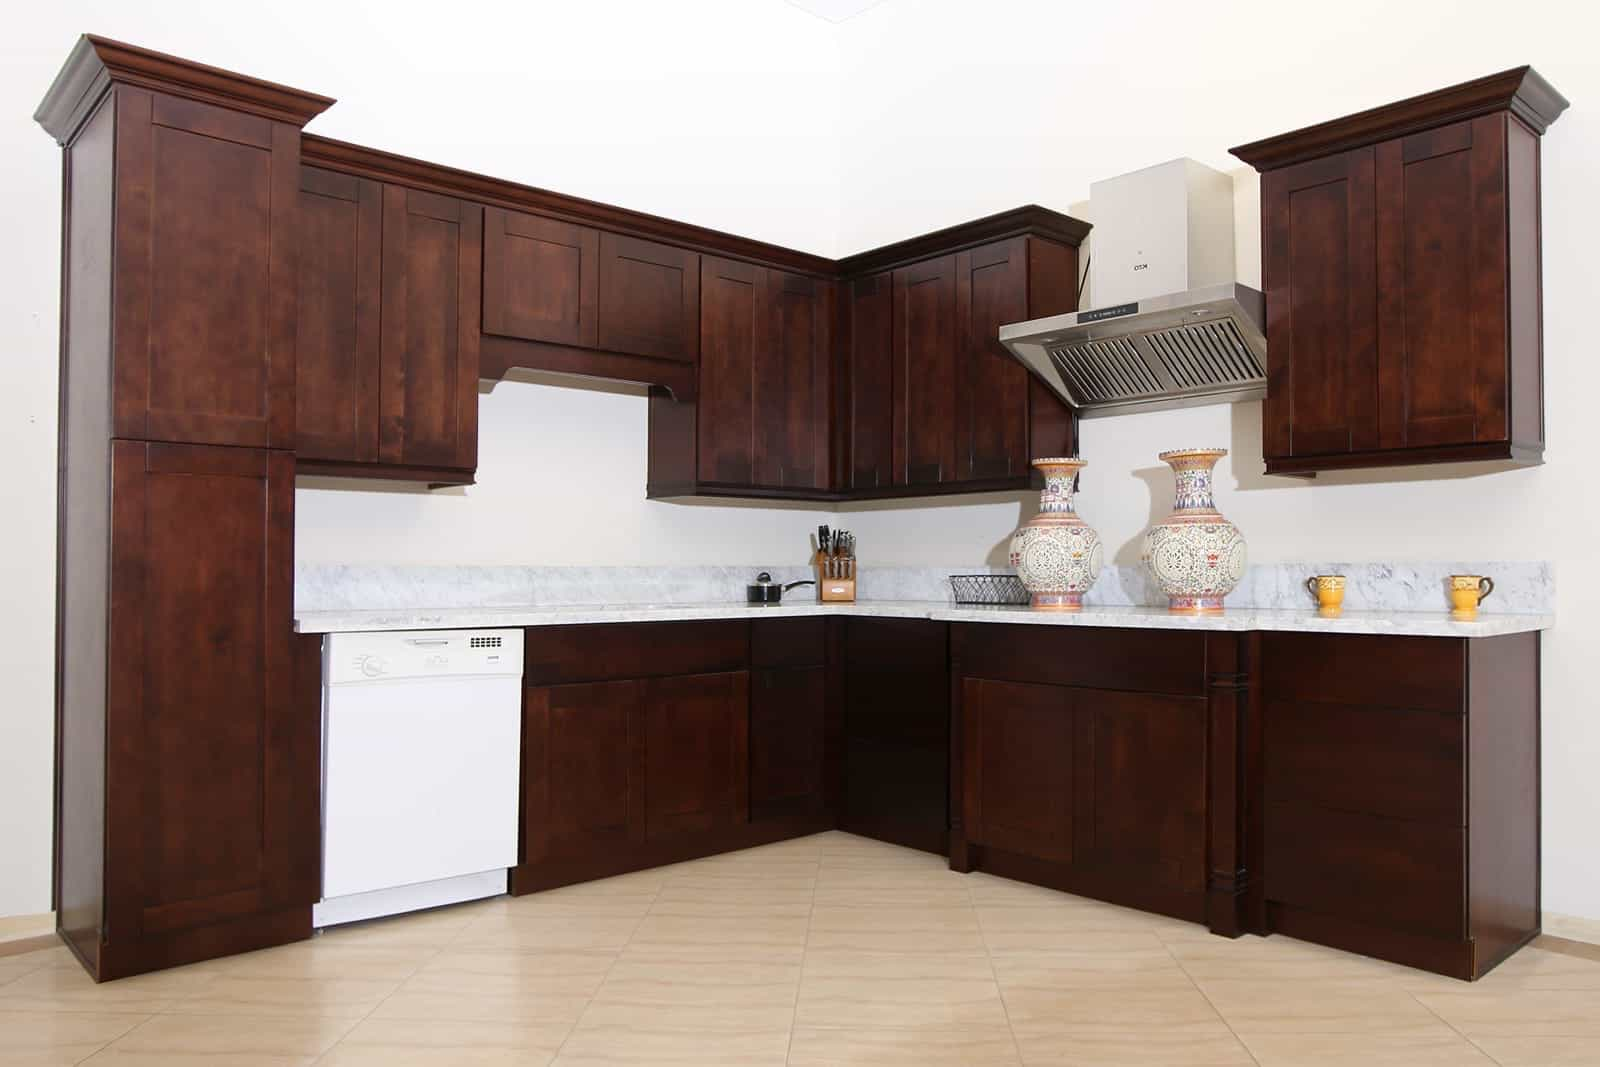 Contemporary Crown Molding For Kitchen Cabinets Shaker Cabinets With Crown Molding 24897 Furniture Ideas